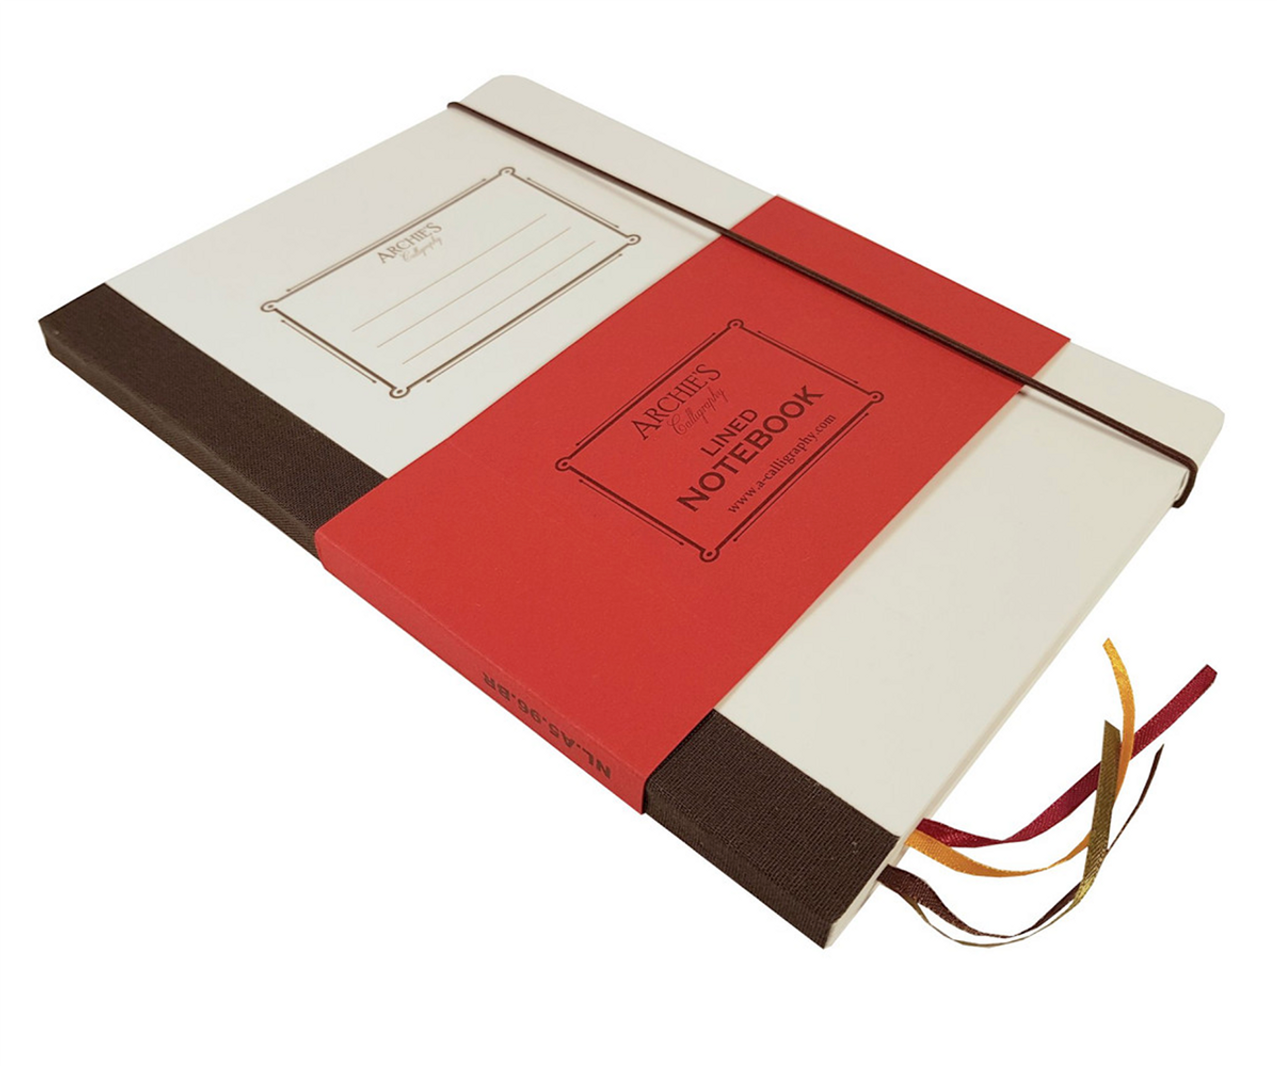 Archie's Calligraphy A5 notebook, lined pages